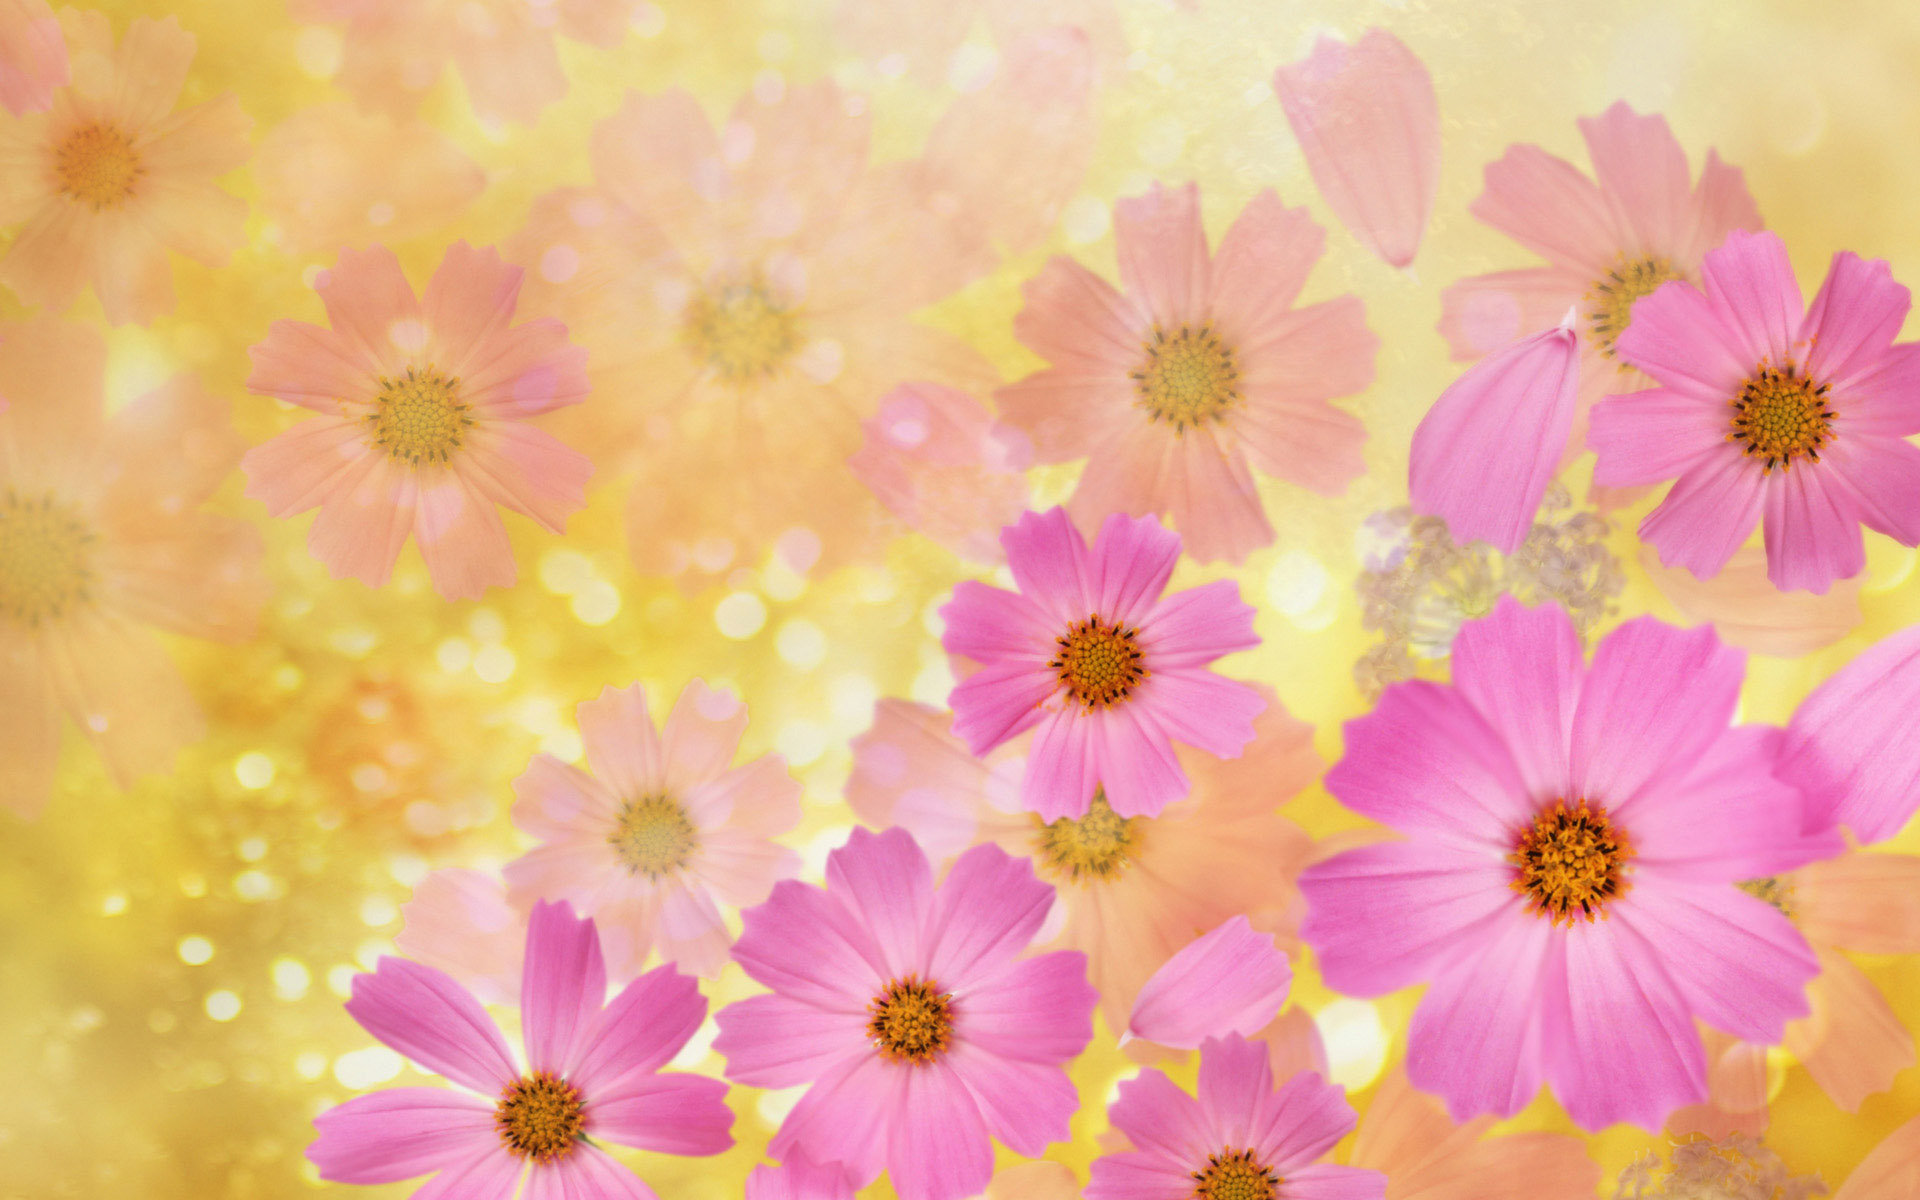 Beautiful spring wallpapers pictures images - Floral background ...